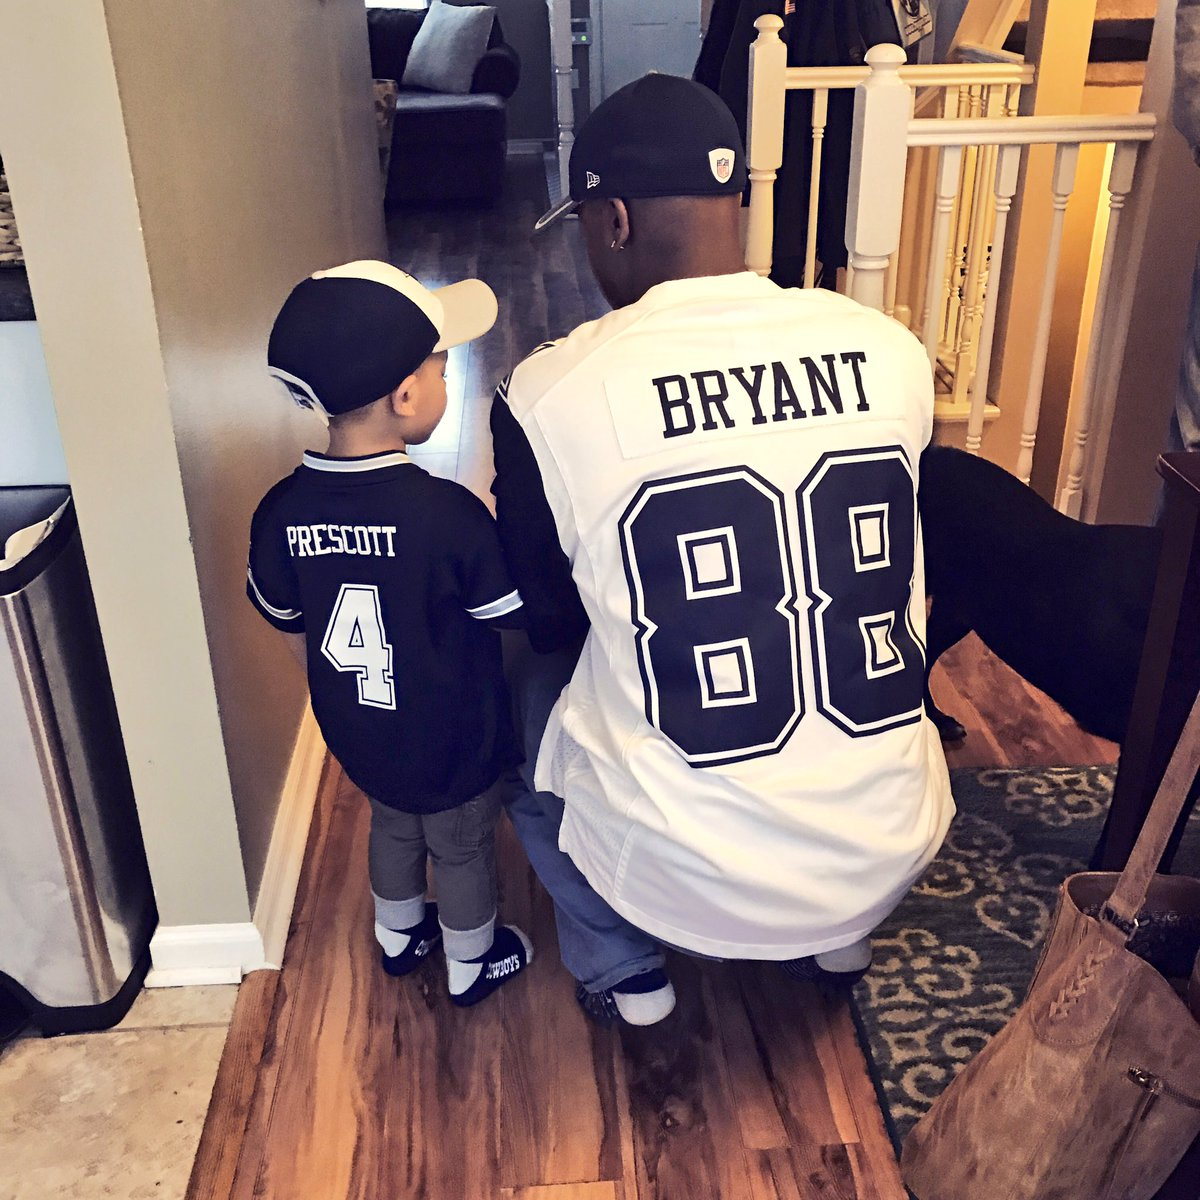 RT @JoseWeezy85: We ready! #FinishThisFight  @dak @DezBryant #CowboysNation https://t.co/r6hrbutjst